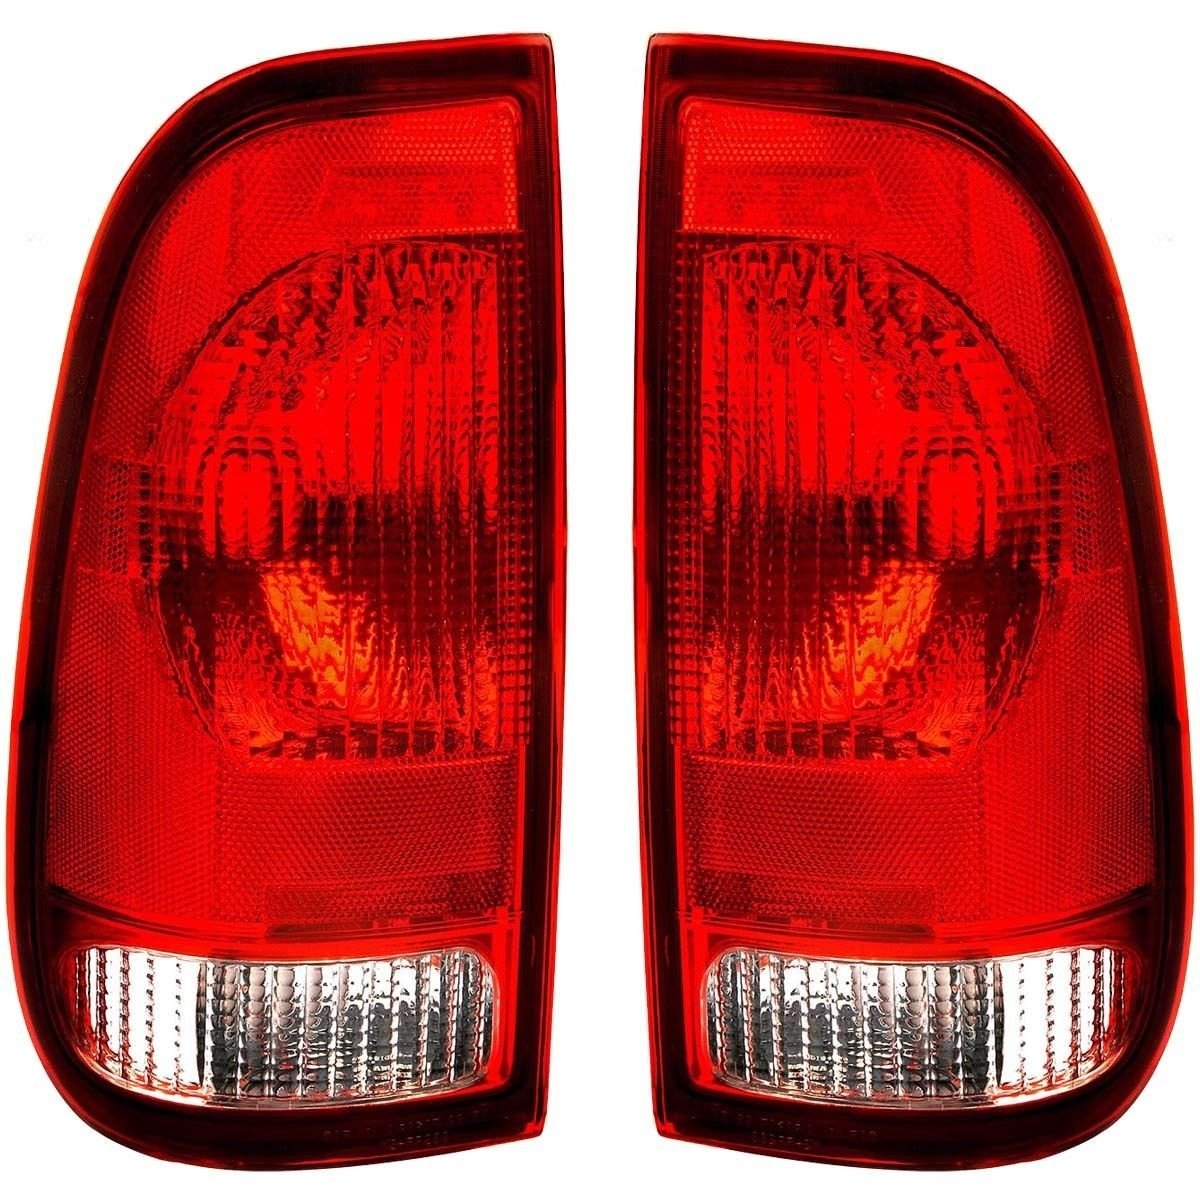 Tail Light Assemblies Brake 2001 Dodge Ram 1500 Wiring Diagram For Reverse Lights Ford Replacement Unit 1 Pair By Autolightsbulbs